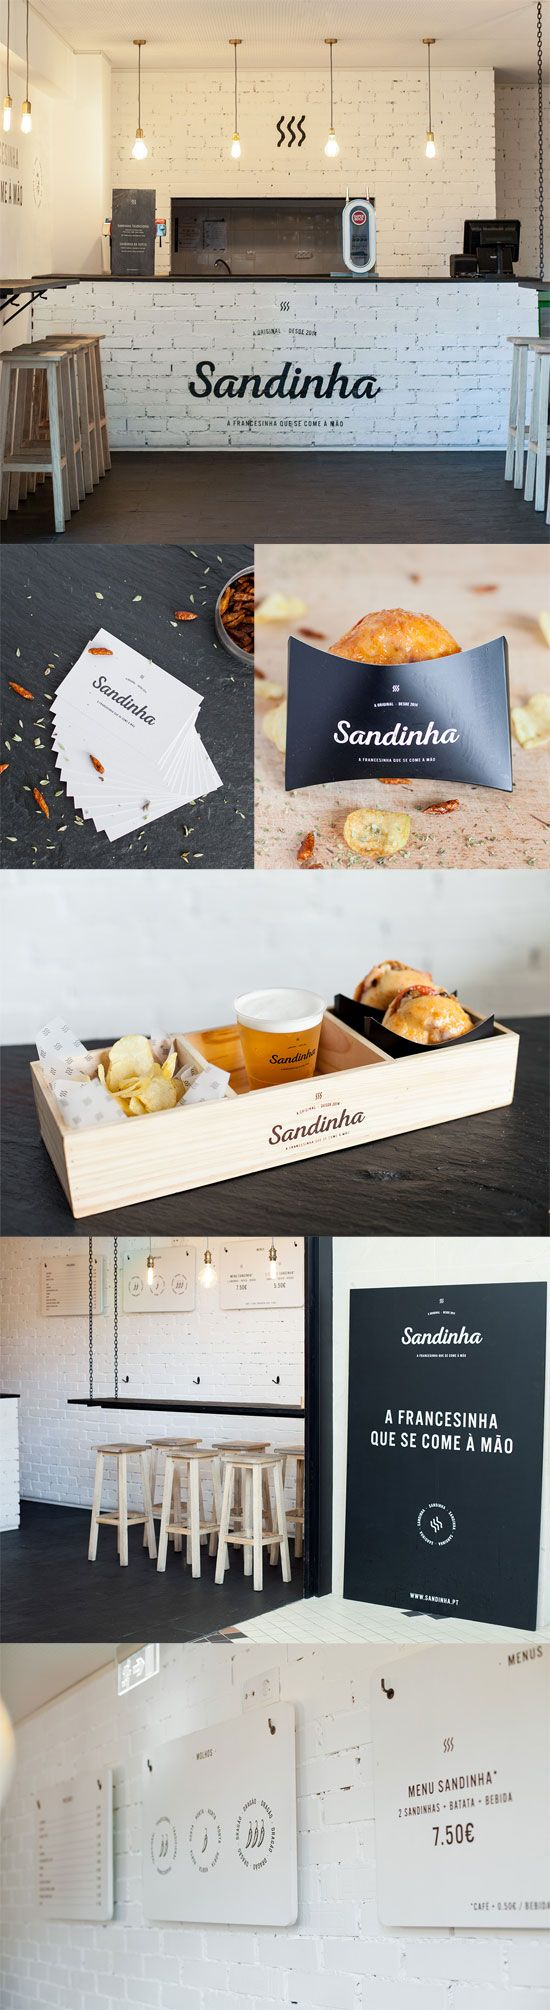 55 Brand Identity Design Examples for Restaurant | iBrandStudio